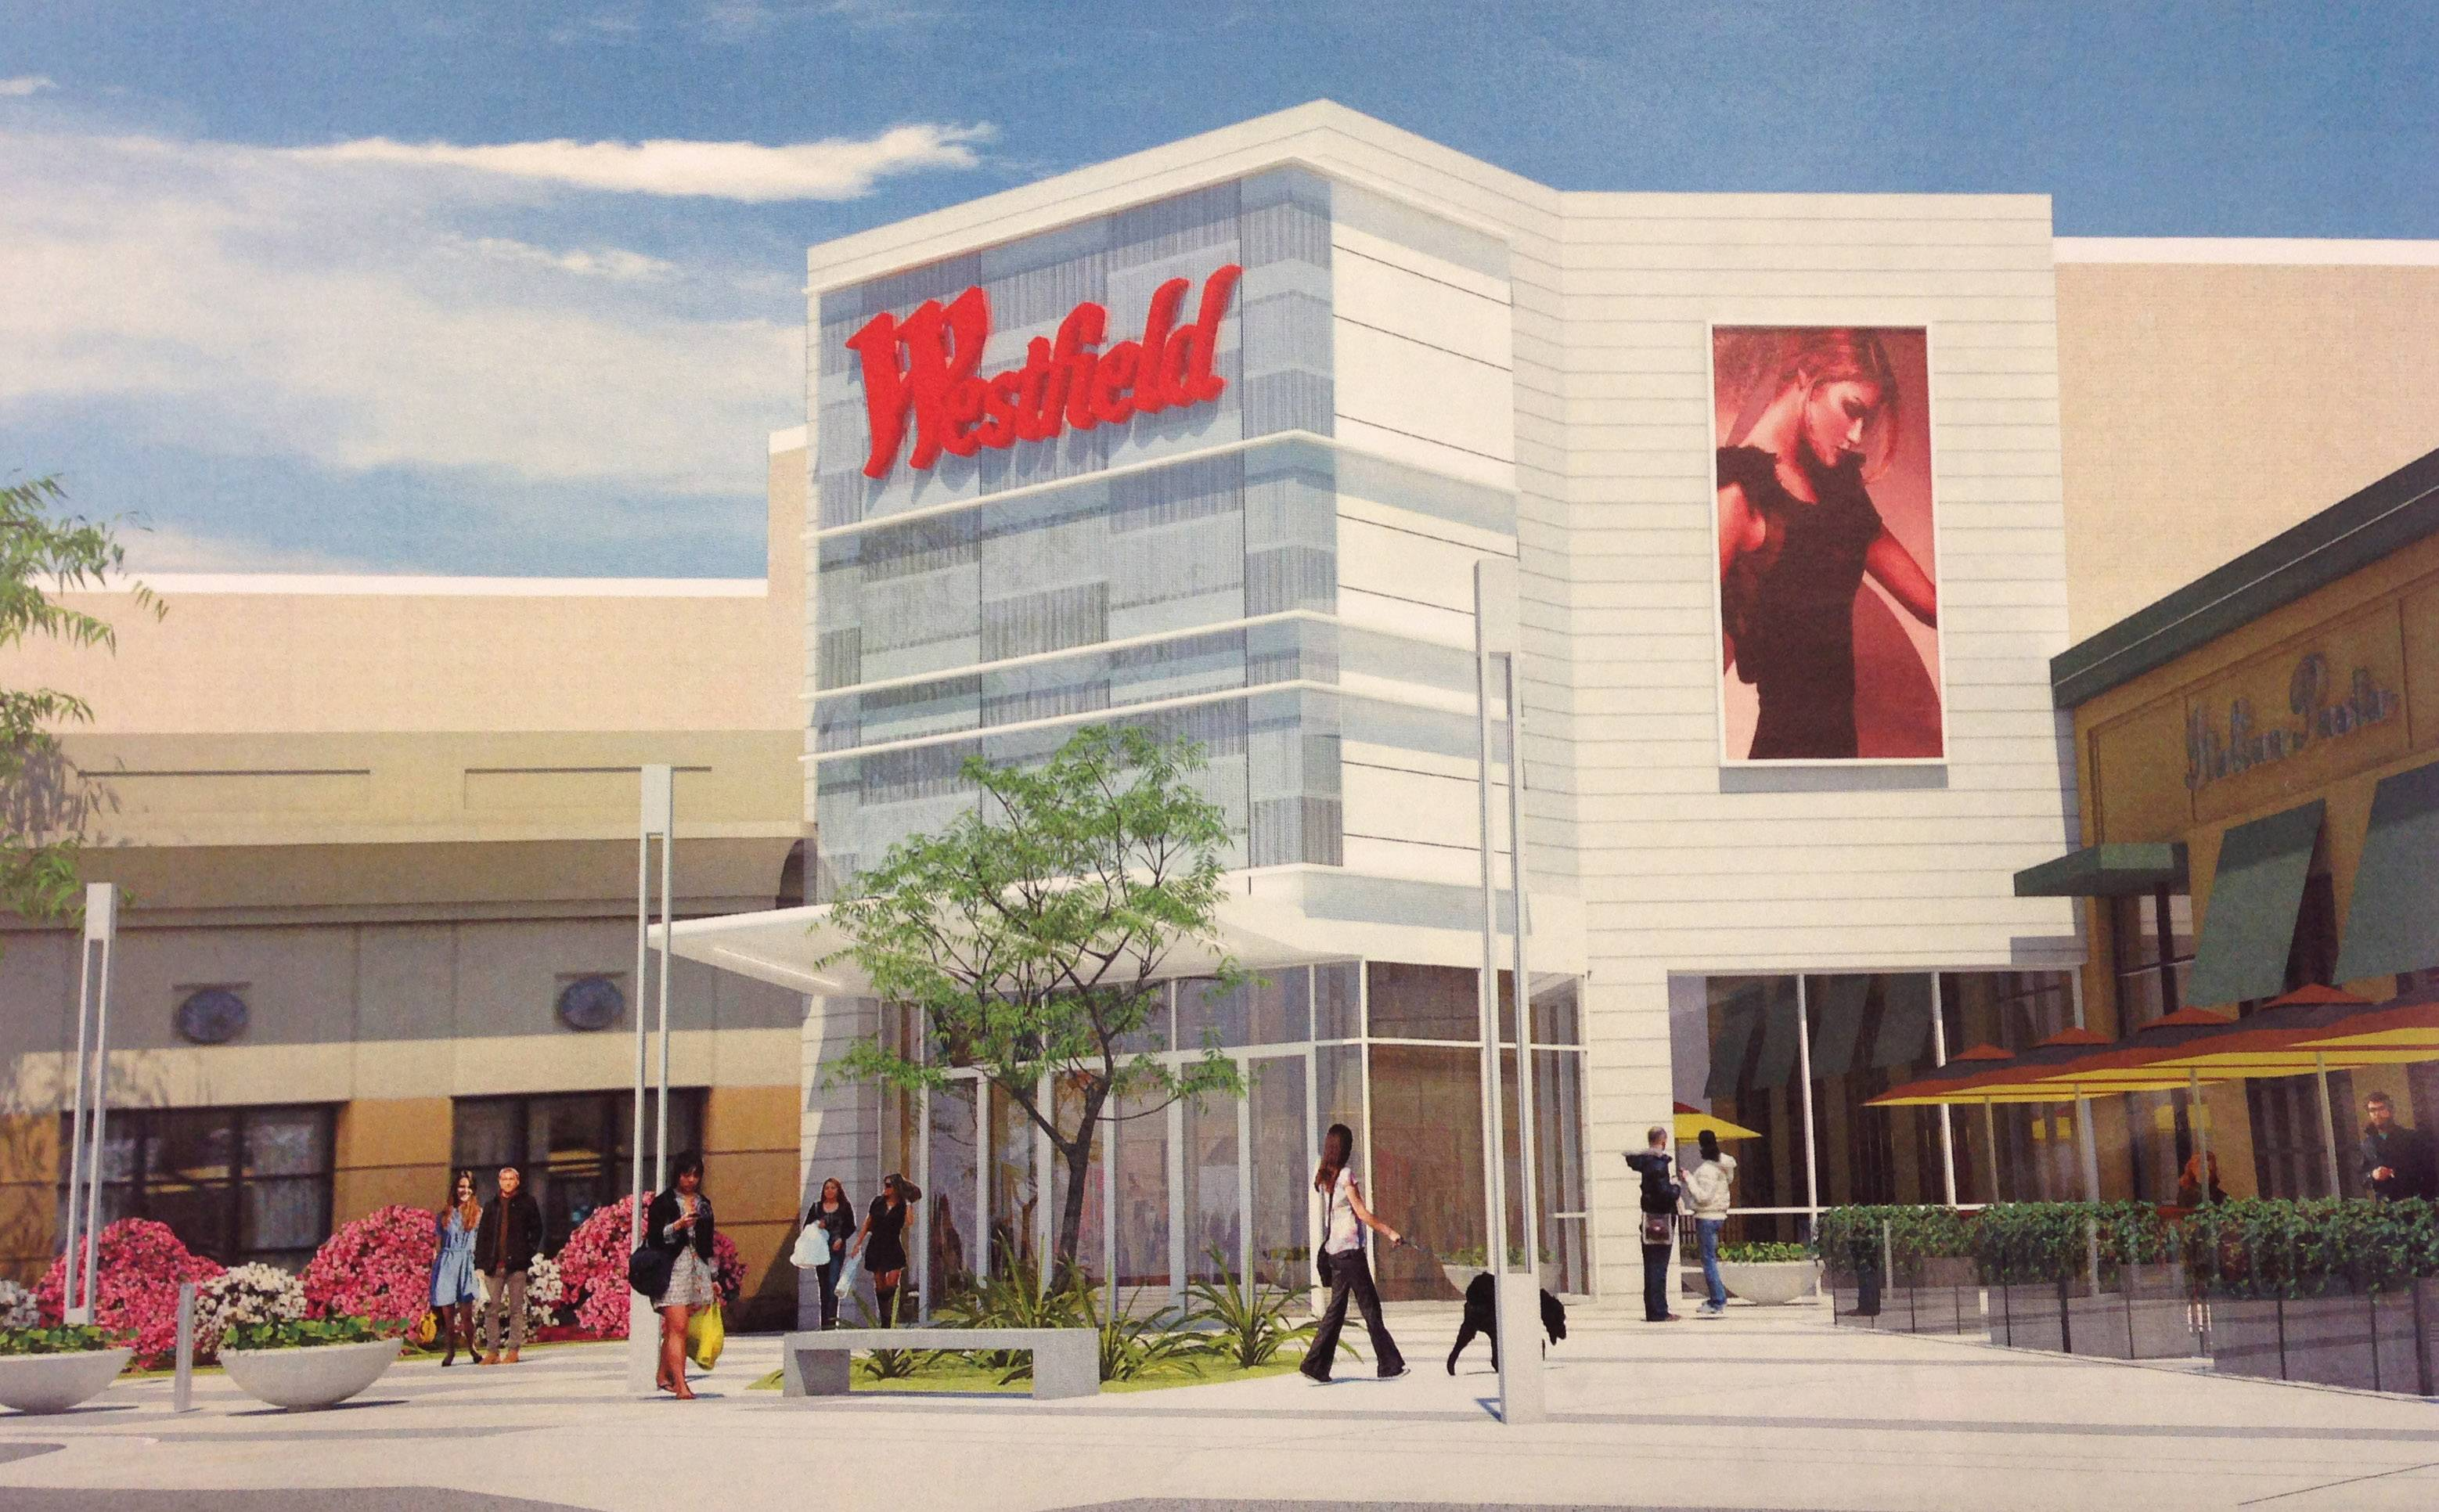 Unibail-Rodamco SE, Europe's largest commercial landlord, is buying Australia's Westfield Corp. for about $15.8 billion. There are five Westfield malls in the suburbs, including in Vernon Hills.